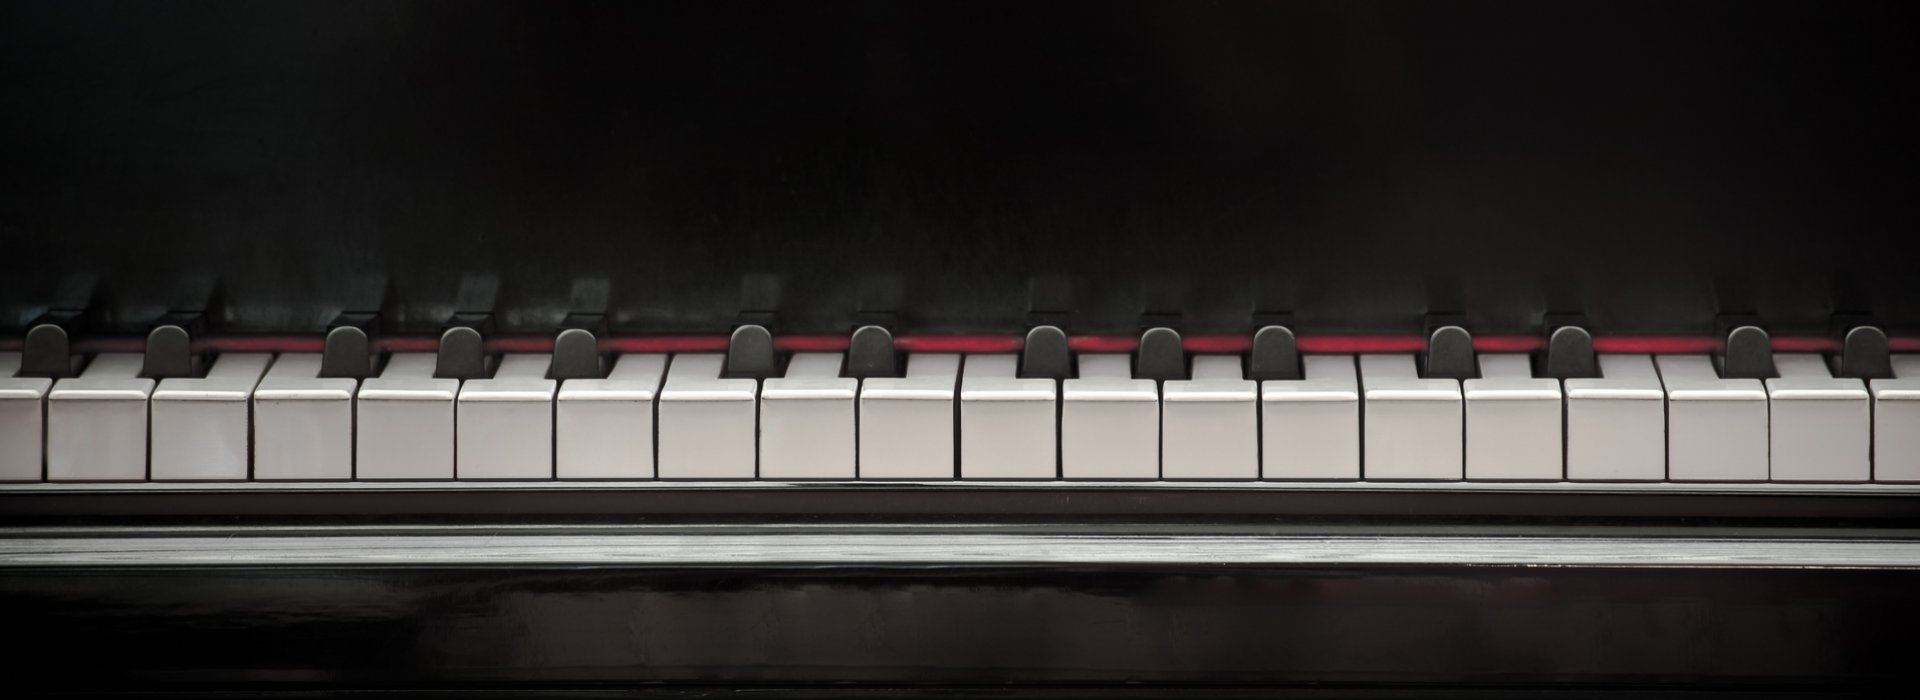 Piano keyboard on which Chopin composed music